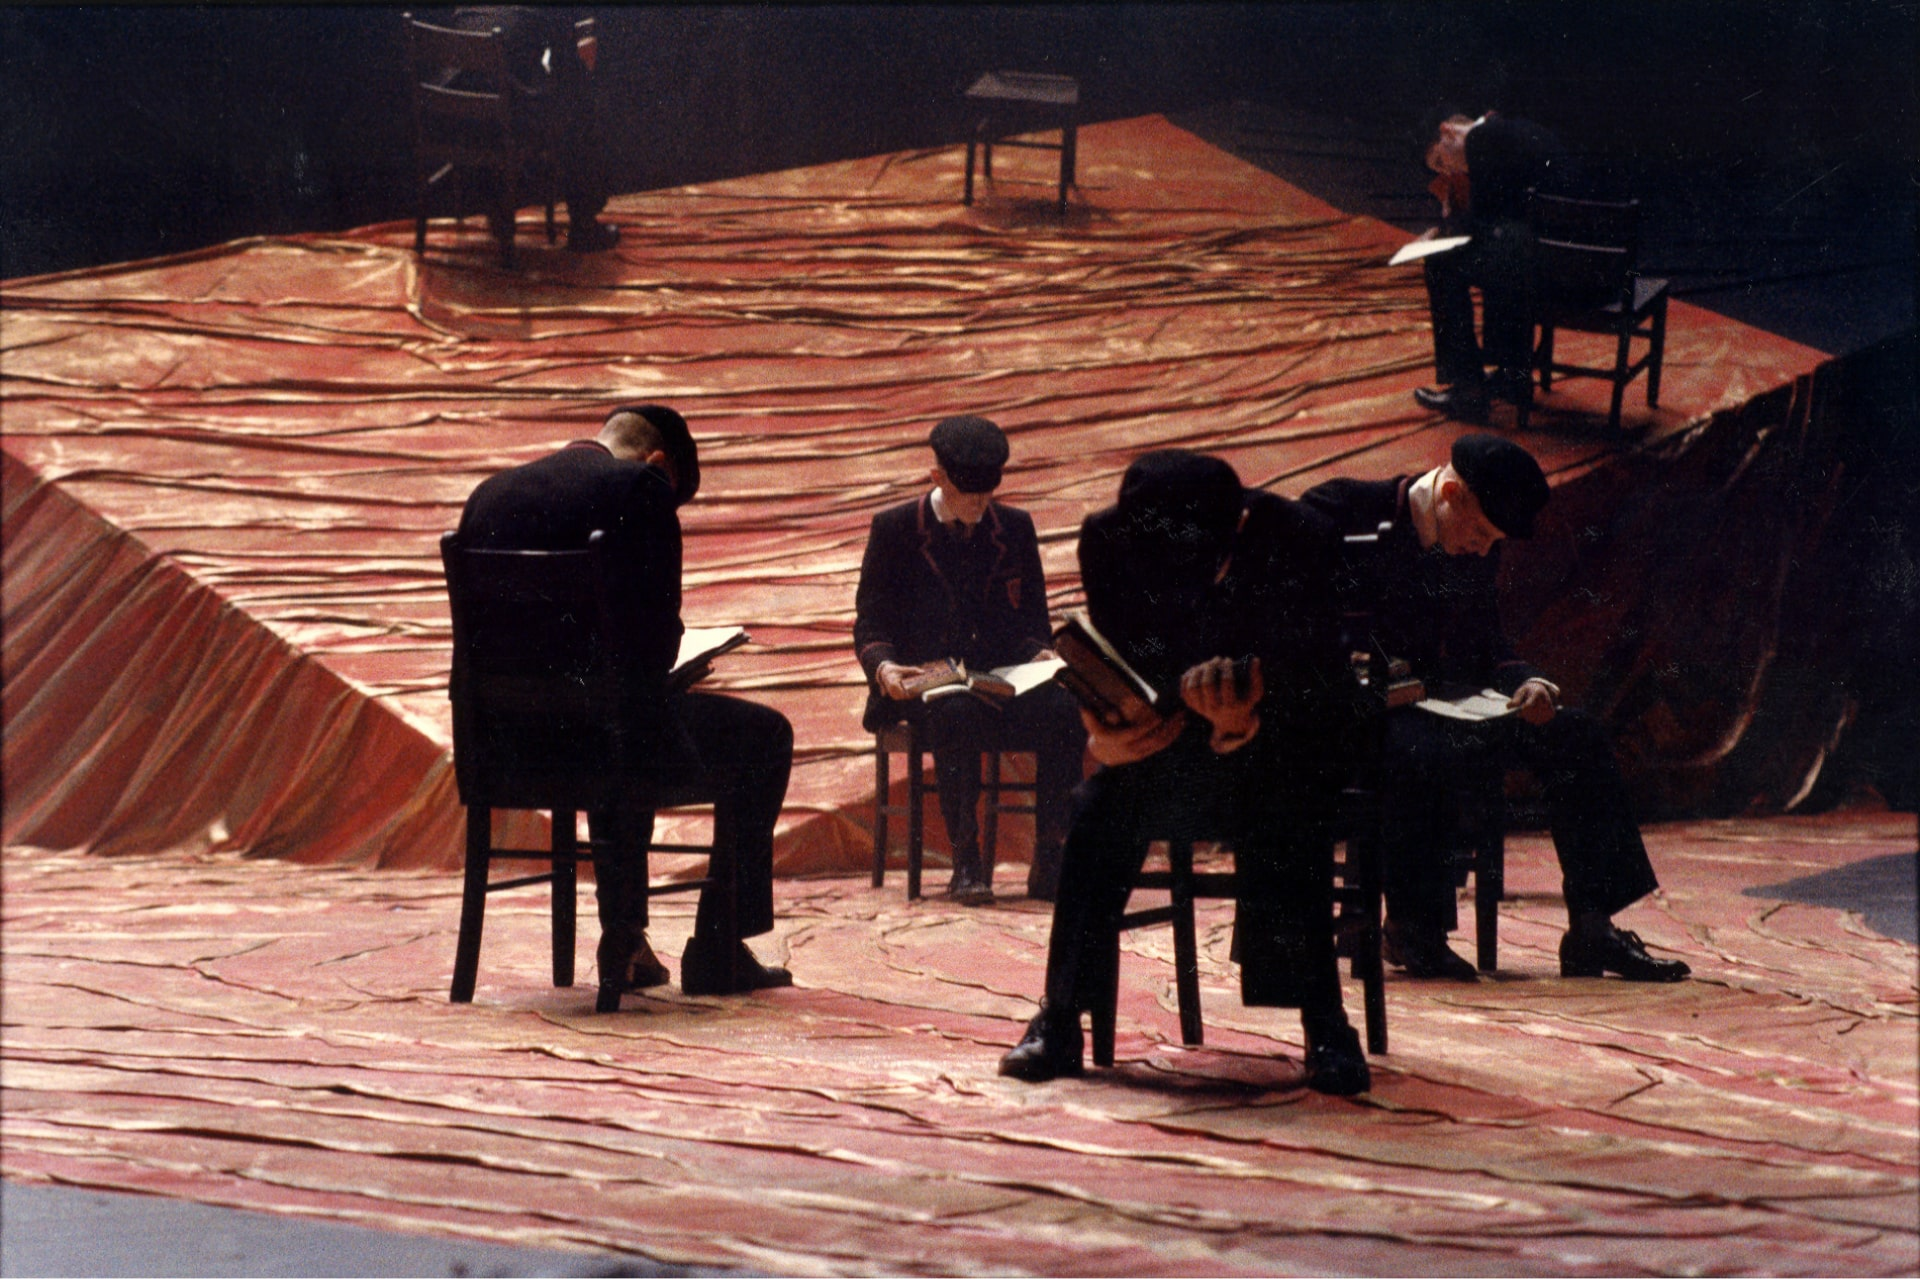 Uniformed schoolboys sit reading on chairs scattered on red fabric flooring.